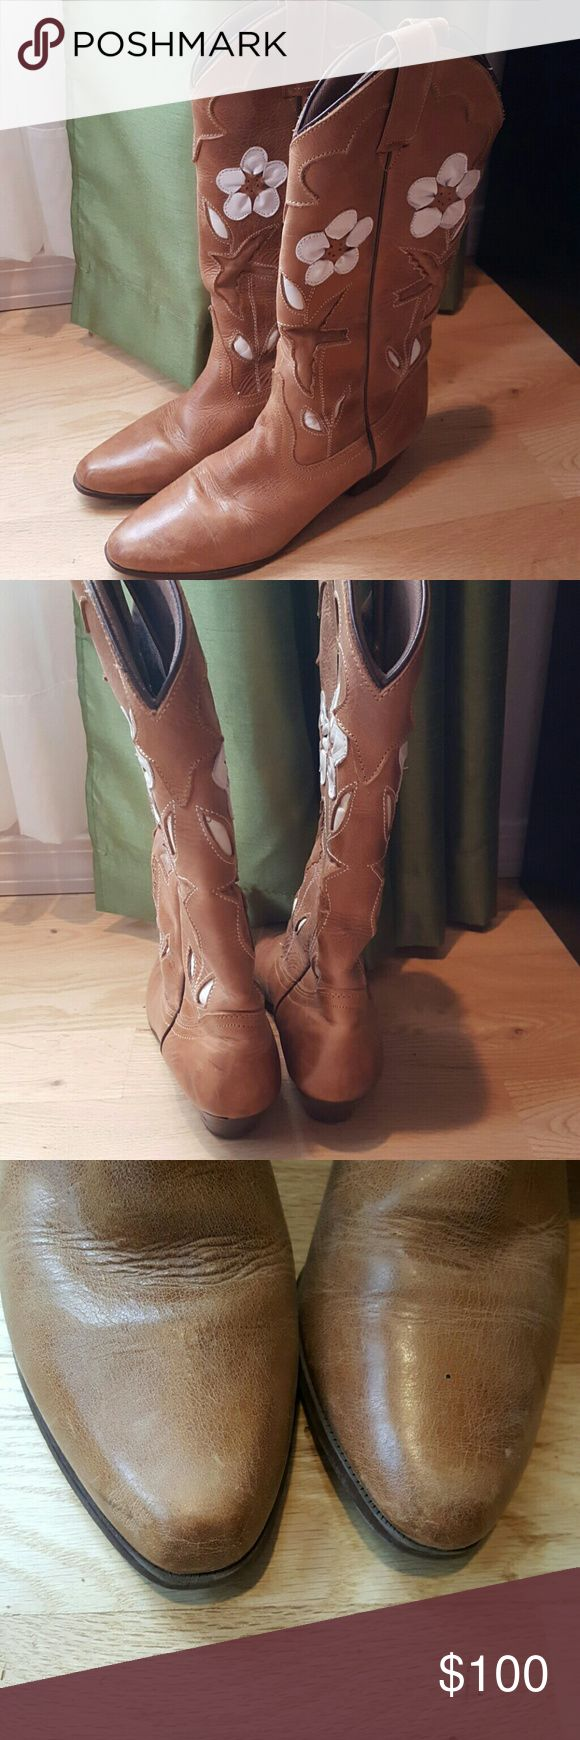 Cute cowboy boots Super cute gently loved cowboy boots! These were purchased a few years ago from a western wear store and weren't cheap! Vintage style cowboy boots with sparrow and white leather flower detailing, small riding heel! These are super cute with dresses and shorts! oak tree farms  Shoes Heeled Boots